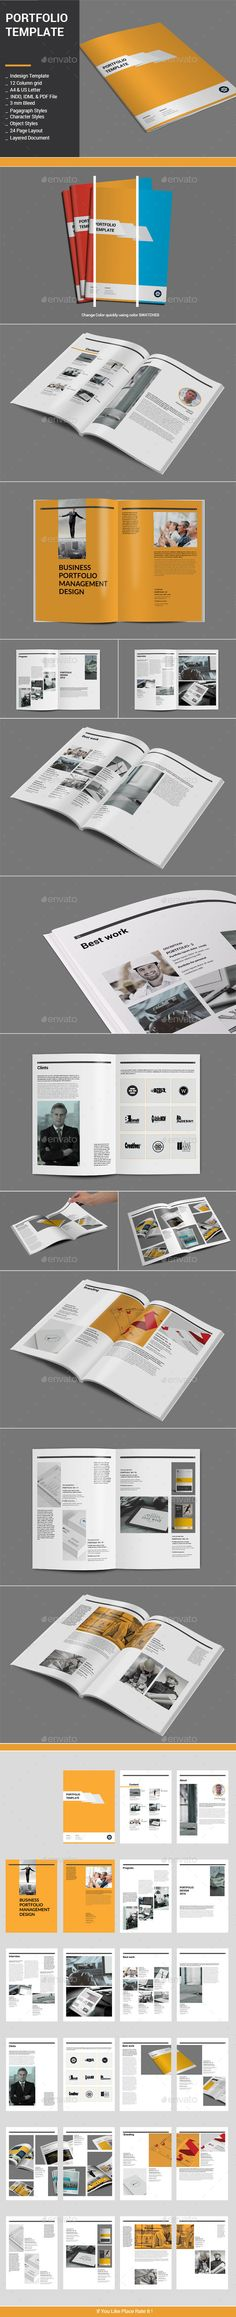 Photographer Portfolio \/ Photo Album Photographer portfolio - fashion design brochure template